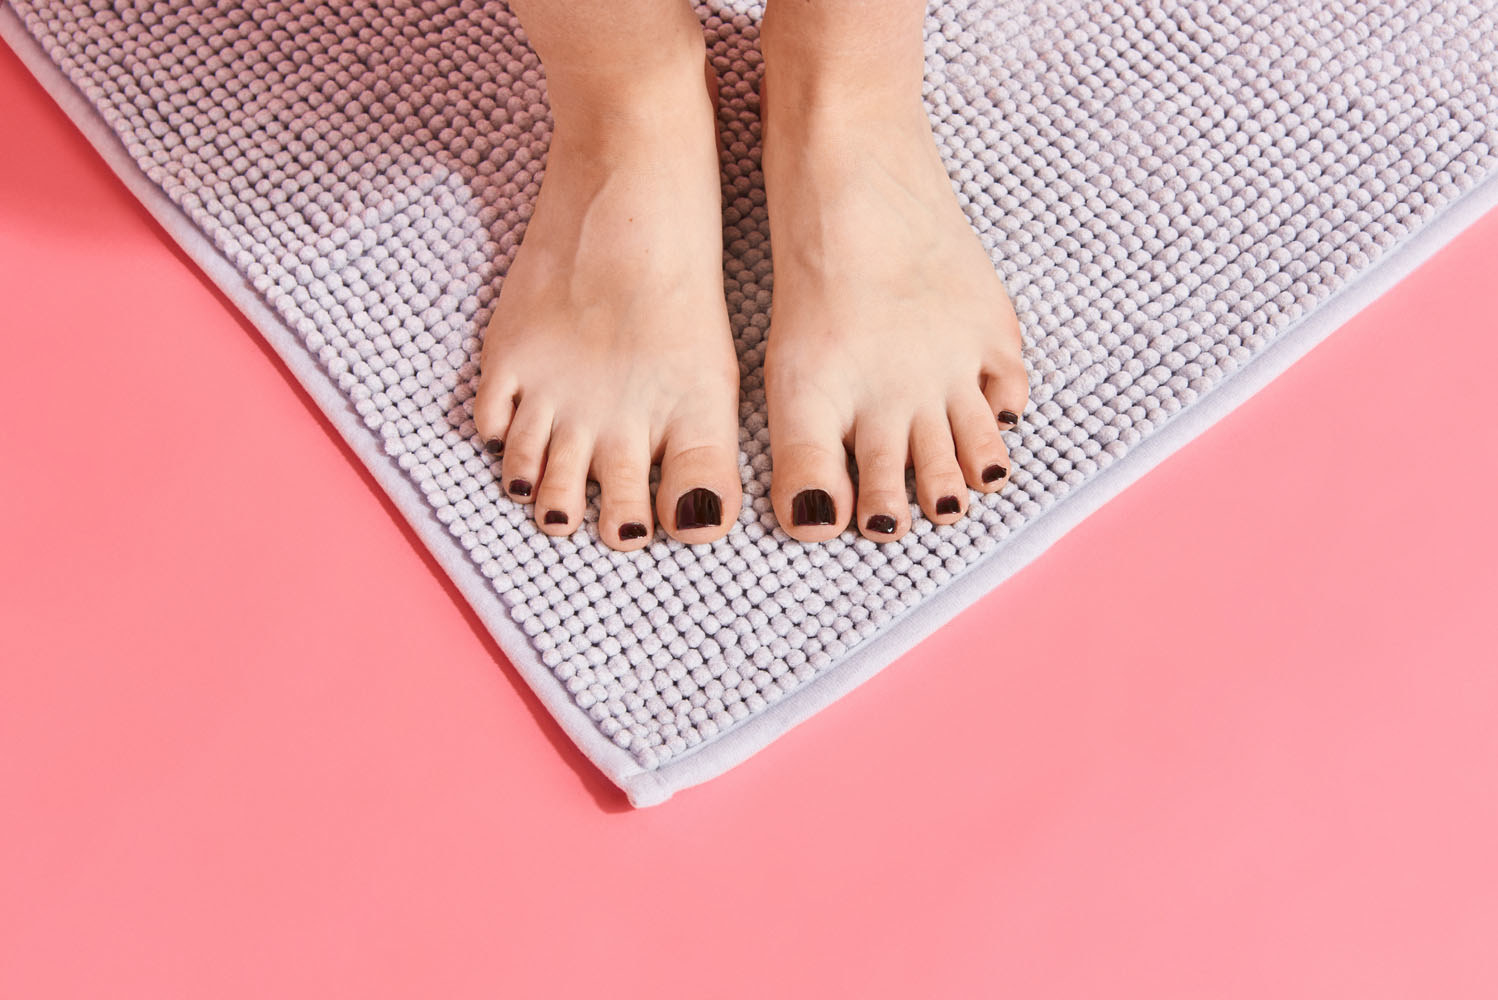 Review The Best Bath Mats For Any Budget